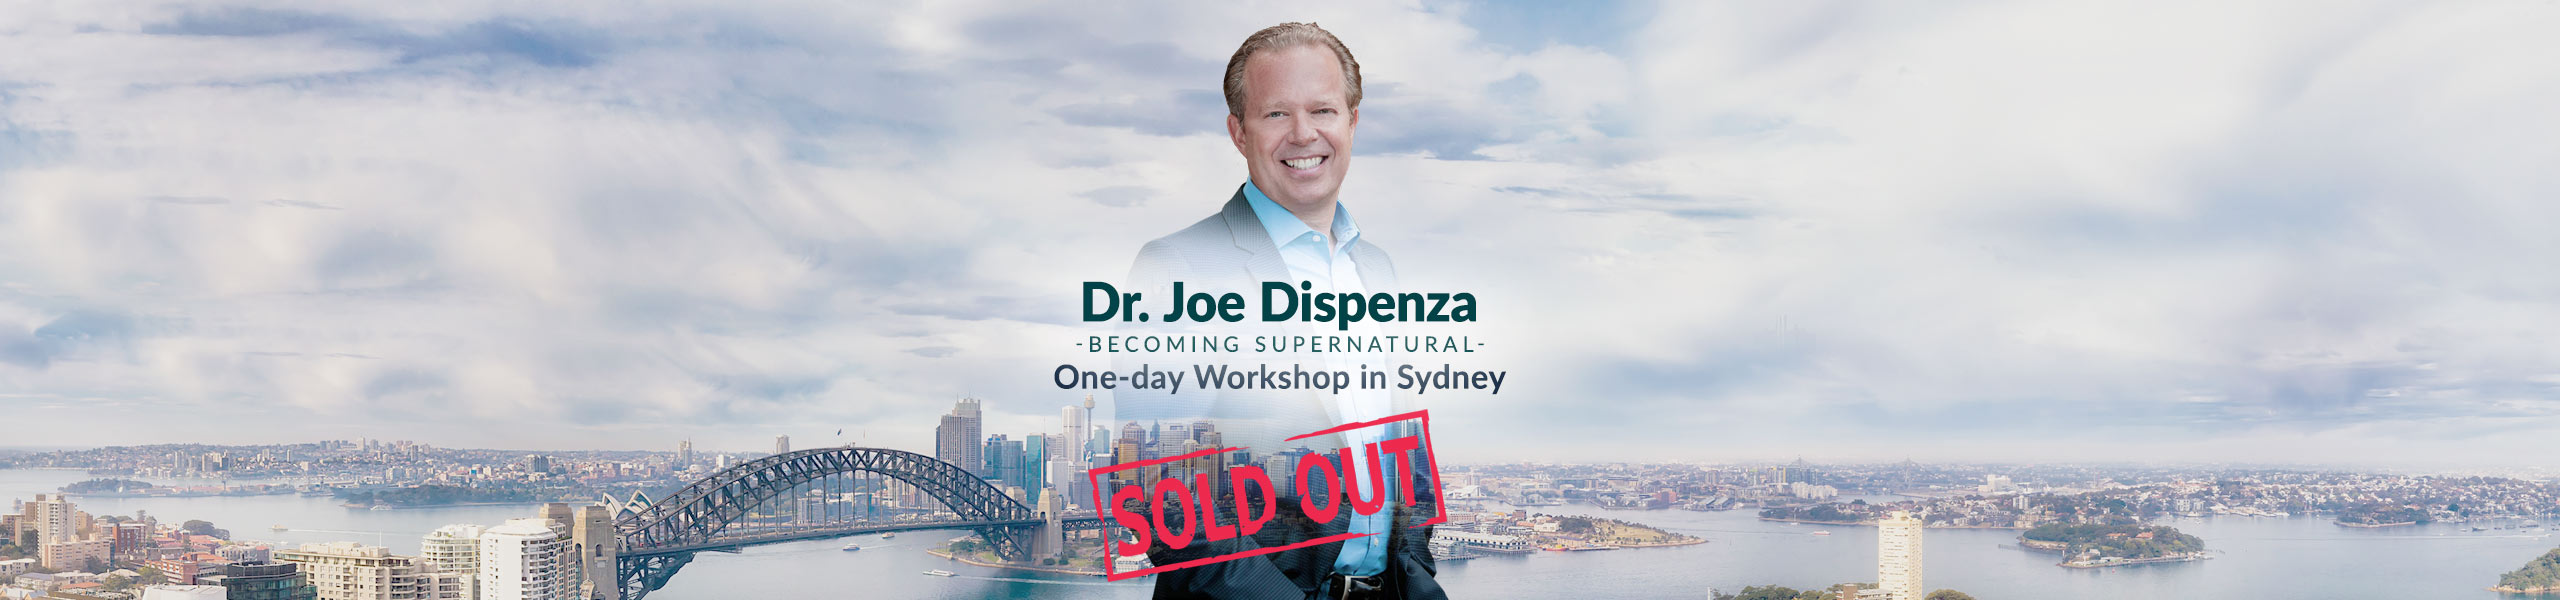 Dr. Joe Dispenza presents Becoming Supernatural